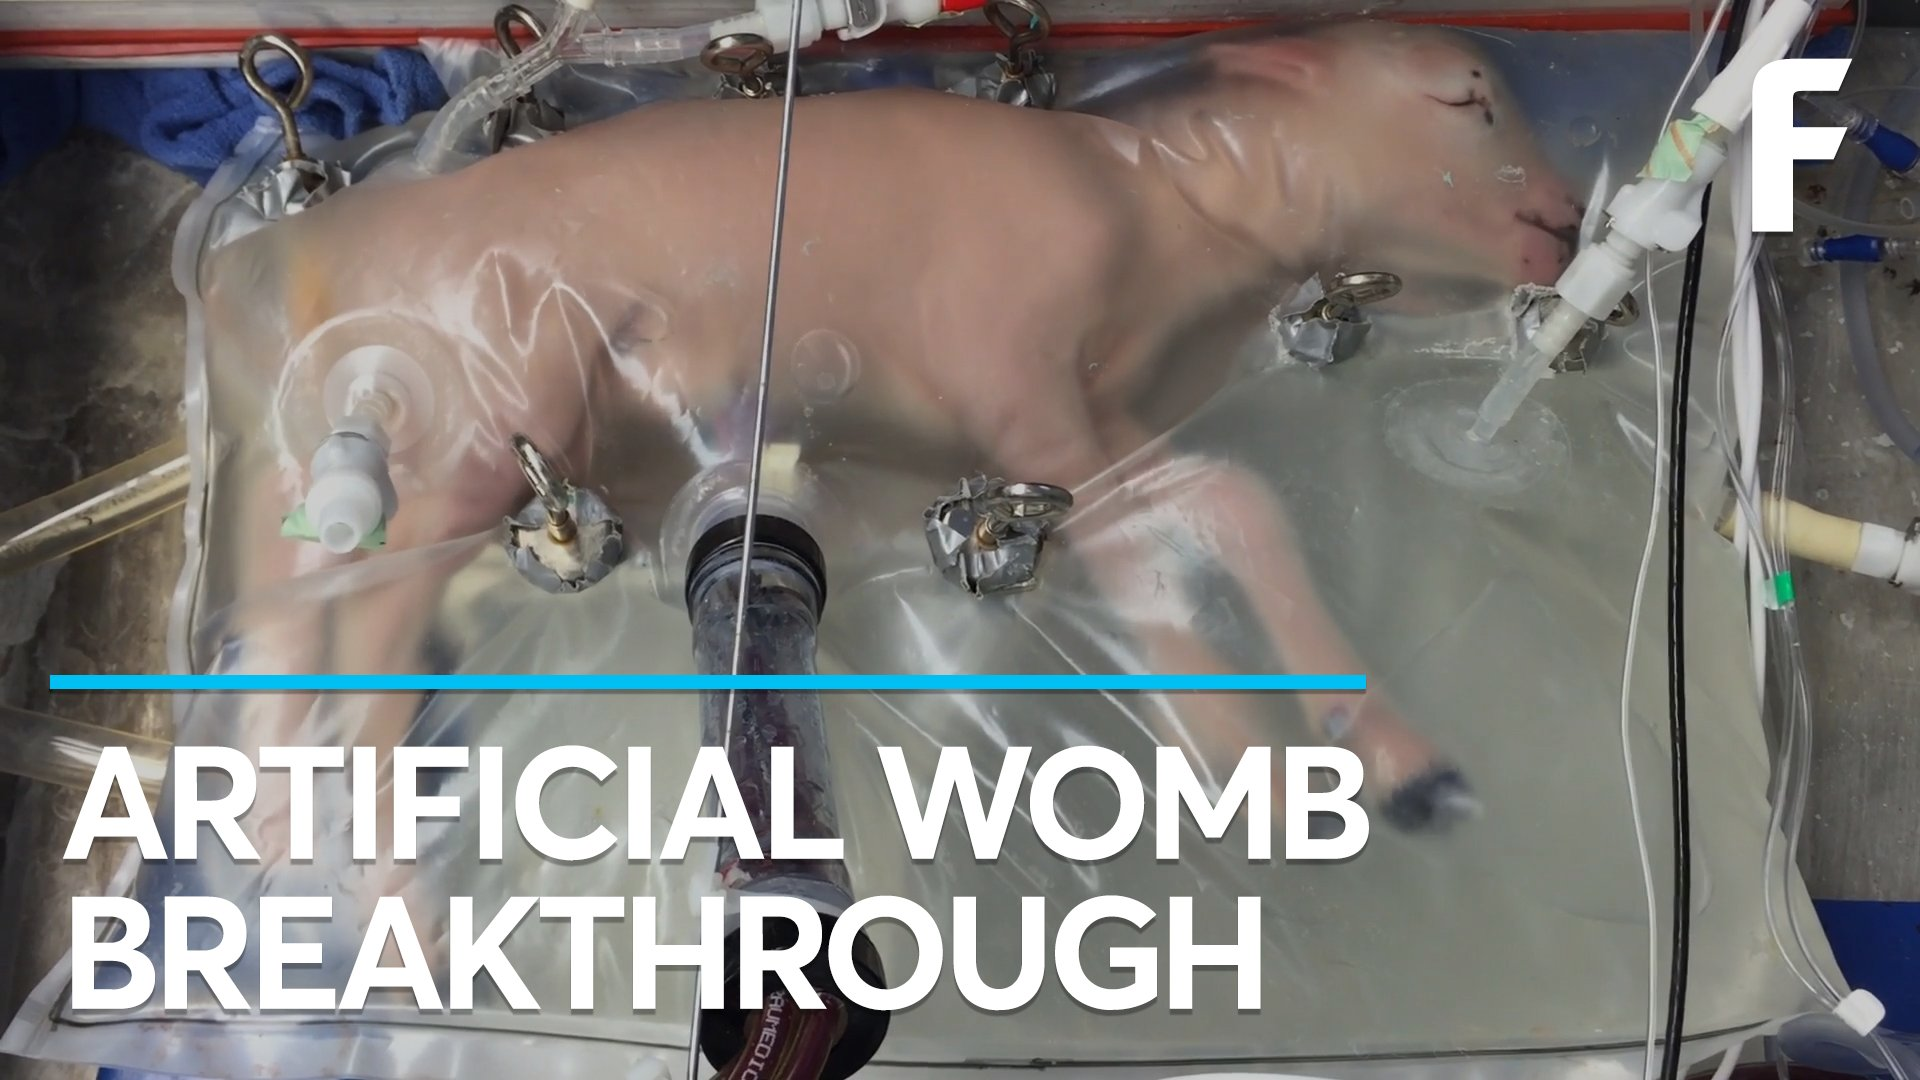 RT @futurism: BREAKING: Researchers have developed a functioning artificial womb. https://t.co/yYMa1c7i5I